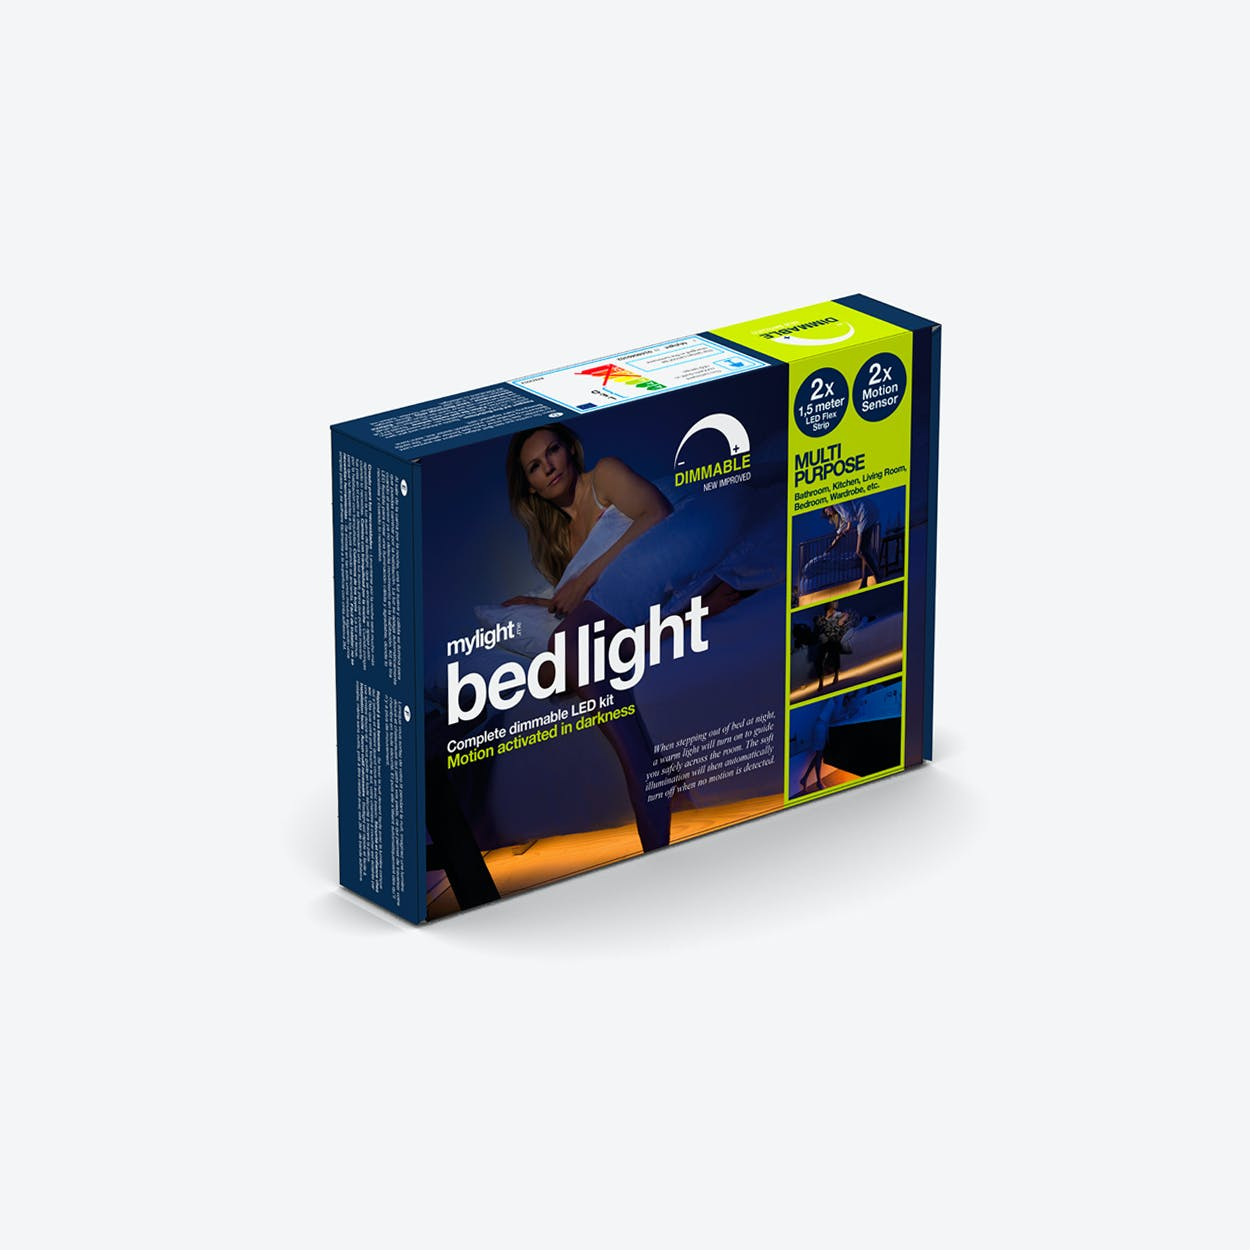 Bed Light - Dimmable LED Stripes with 2 Movement Sensors (EU Plug)